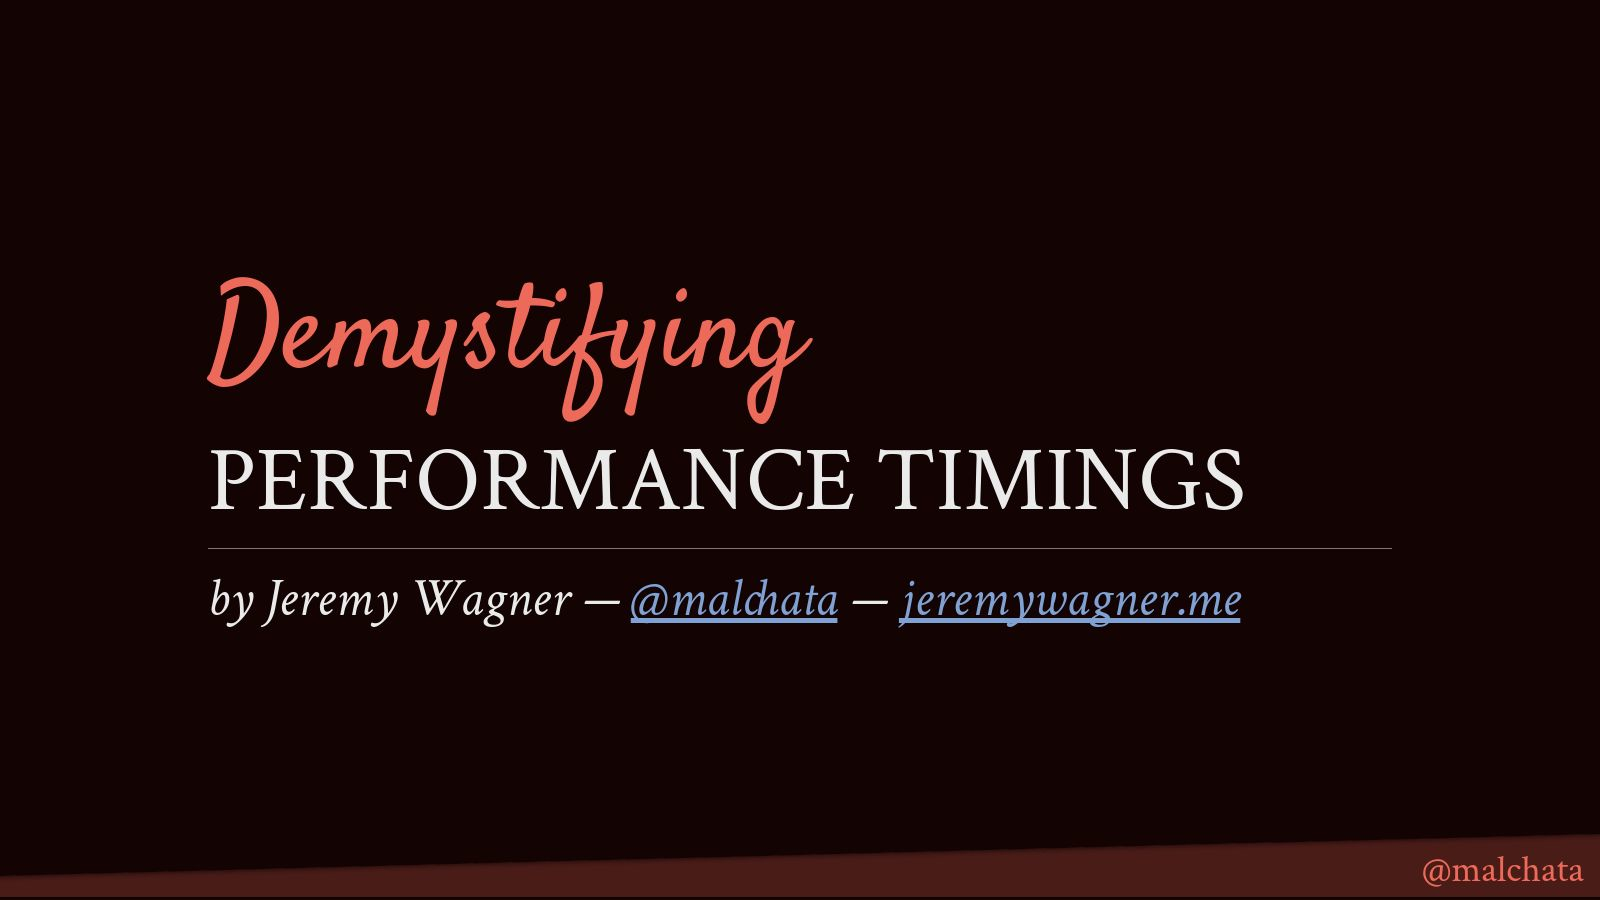 Demystifying Performance Timings